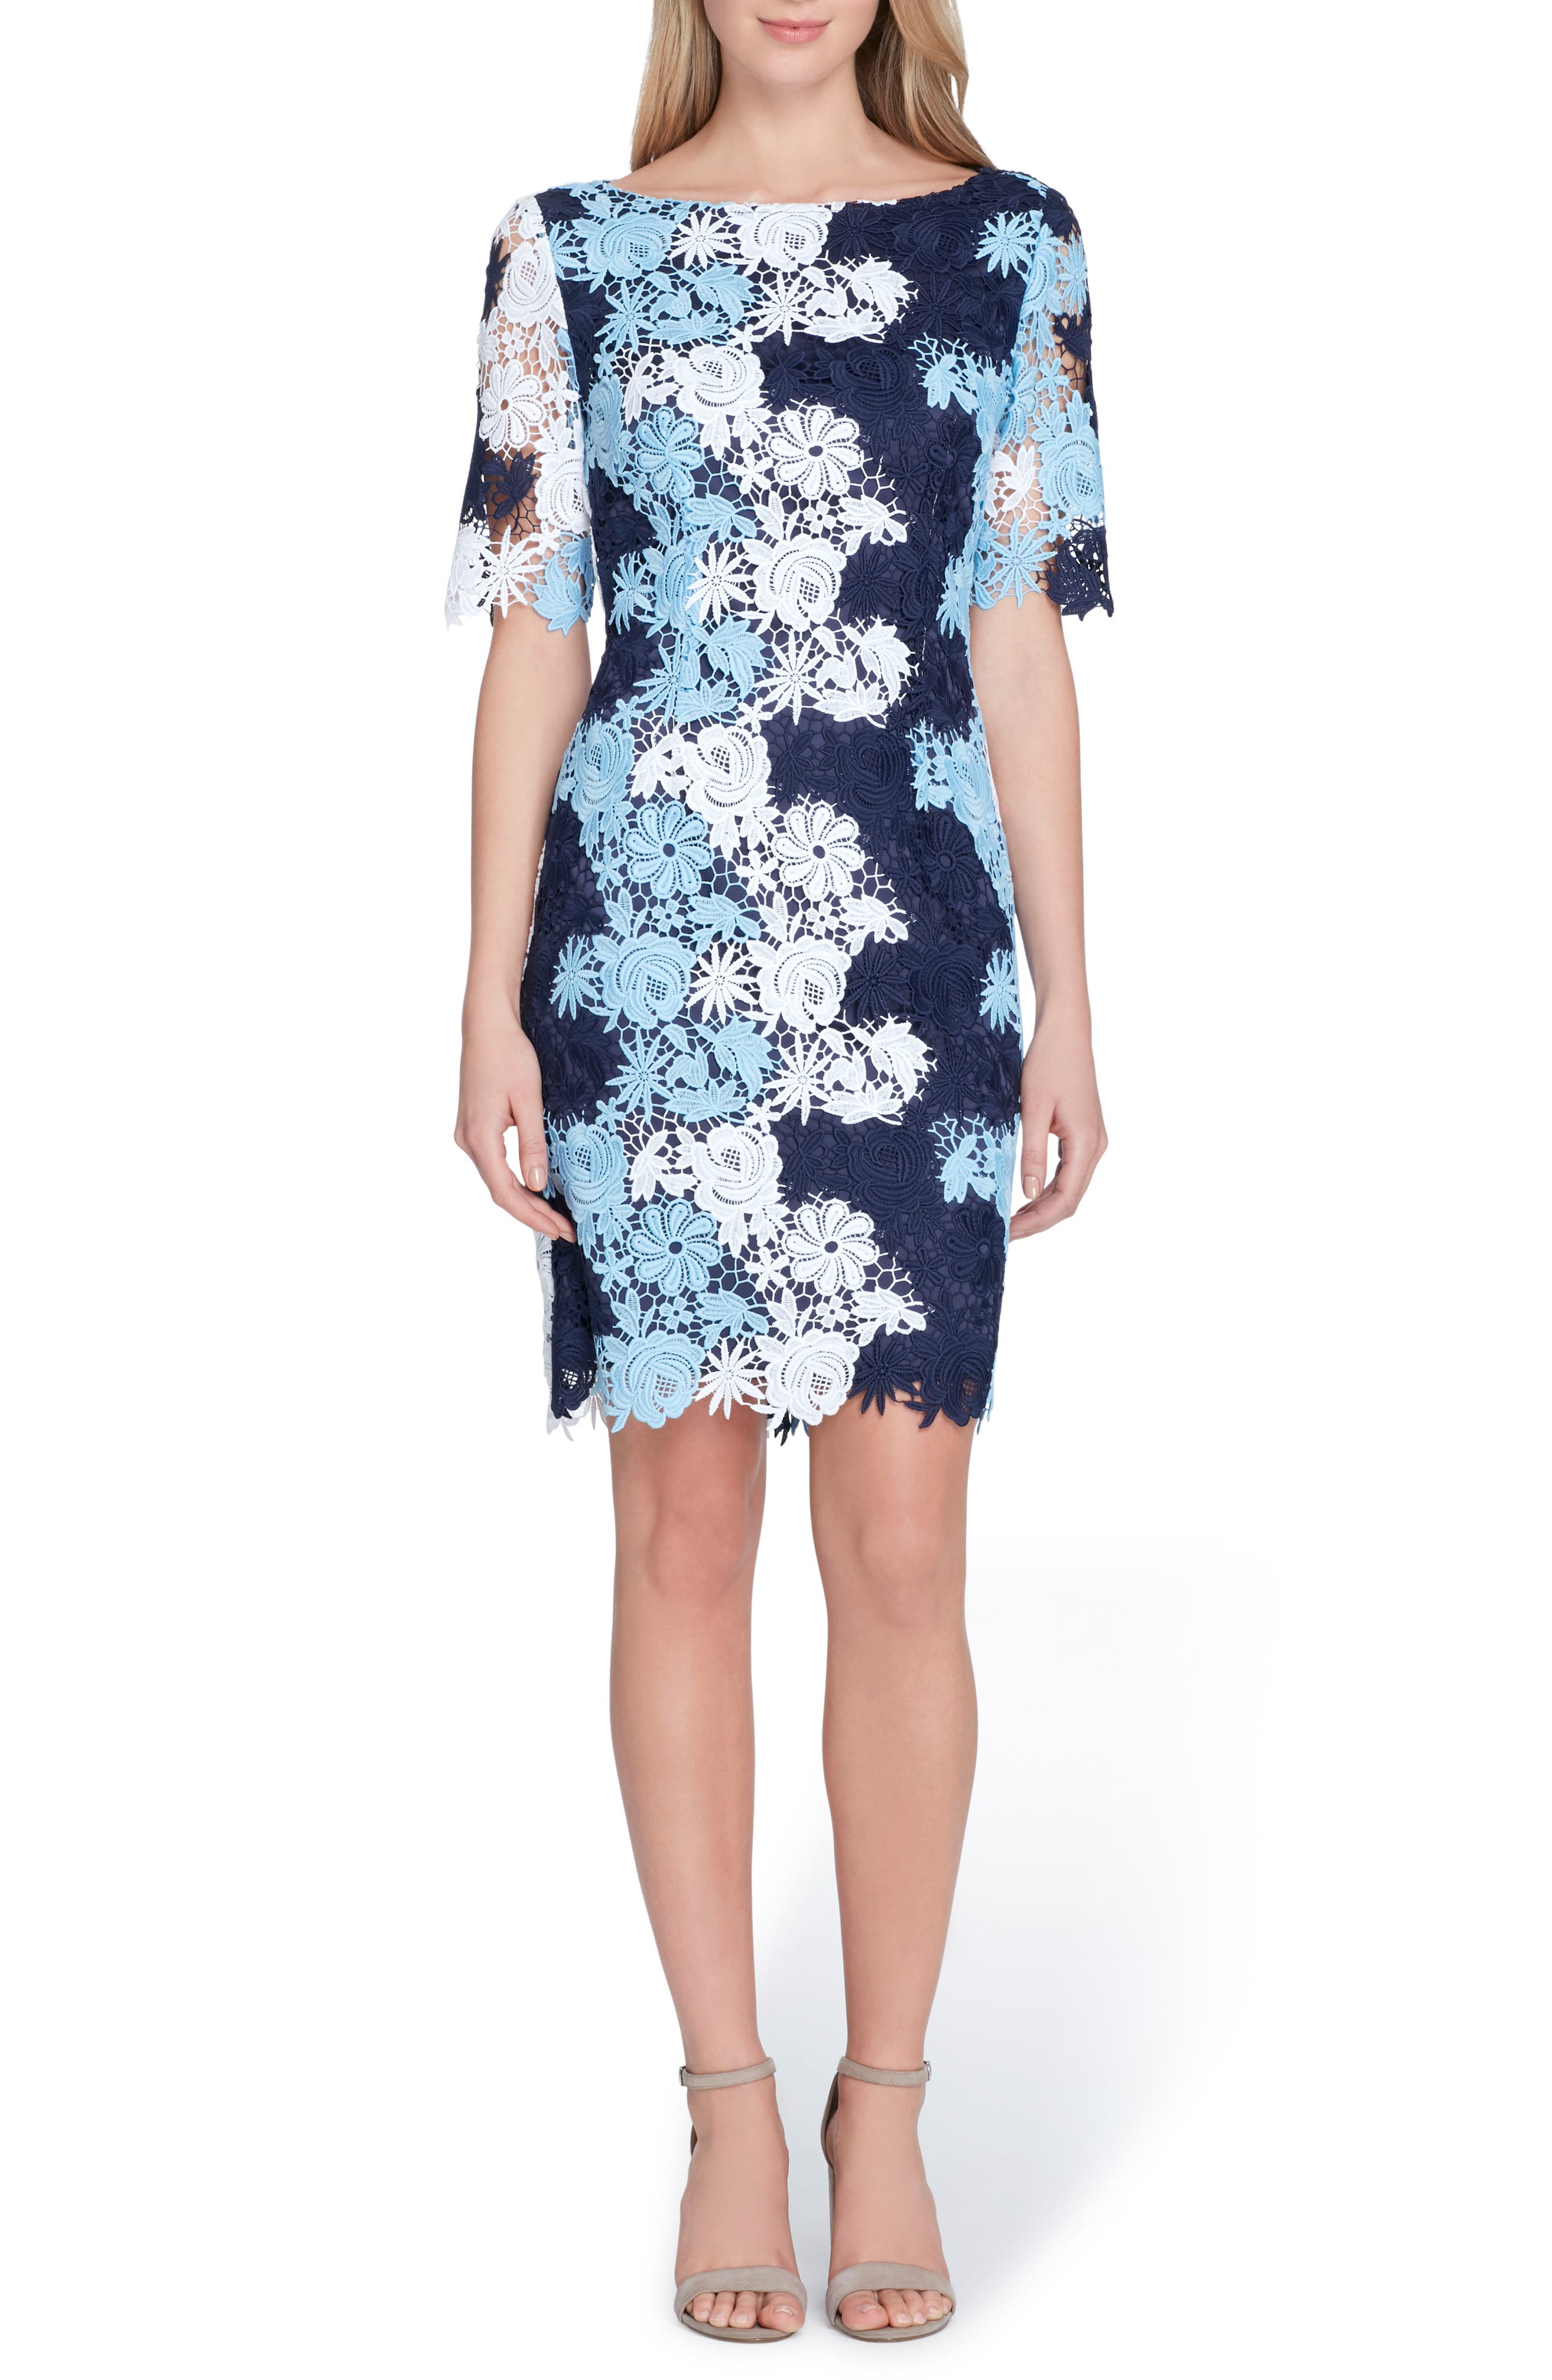 Multicolor Lace Sheath Dress,                             Main thumbnail 1, color,                             Navy/ Sky/ Pale Blue